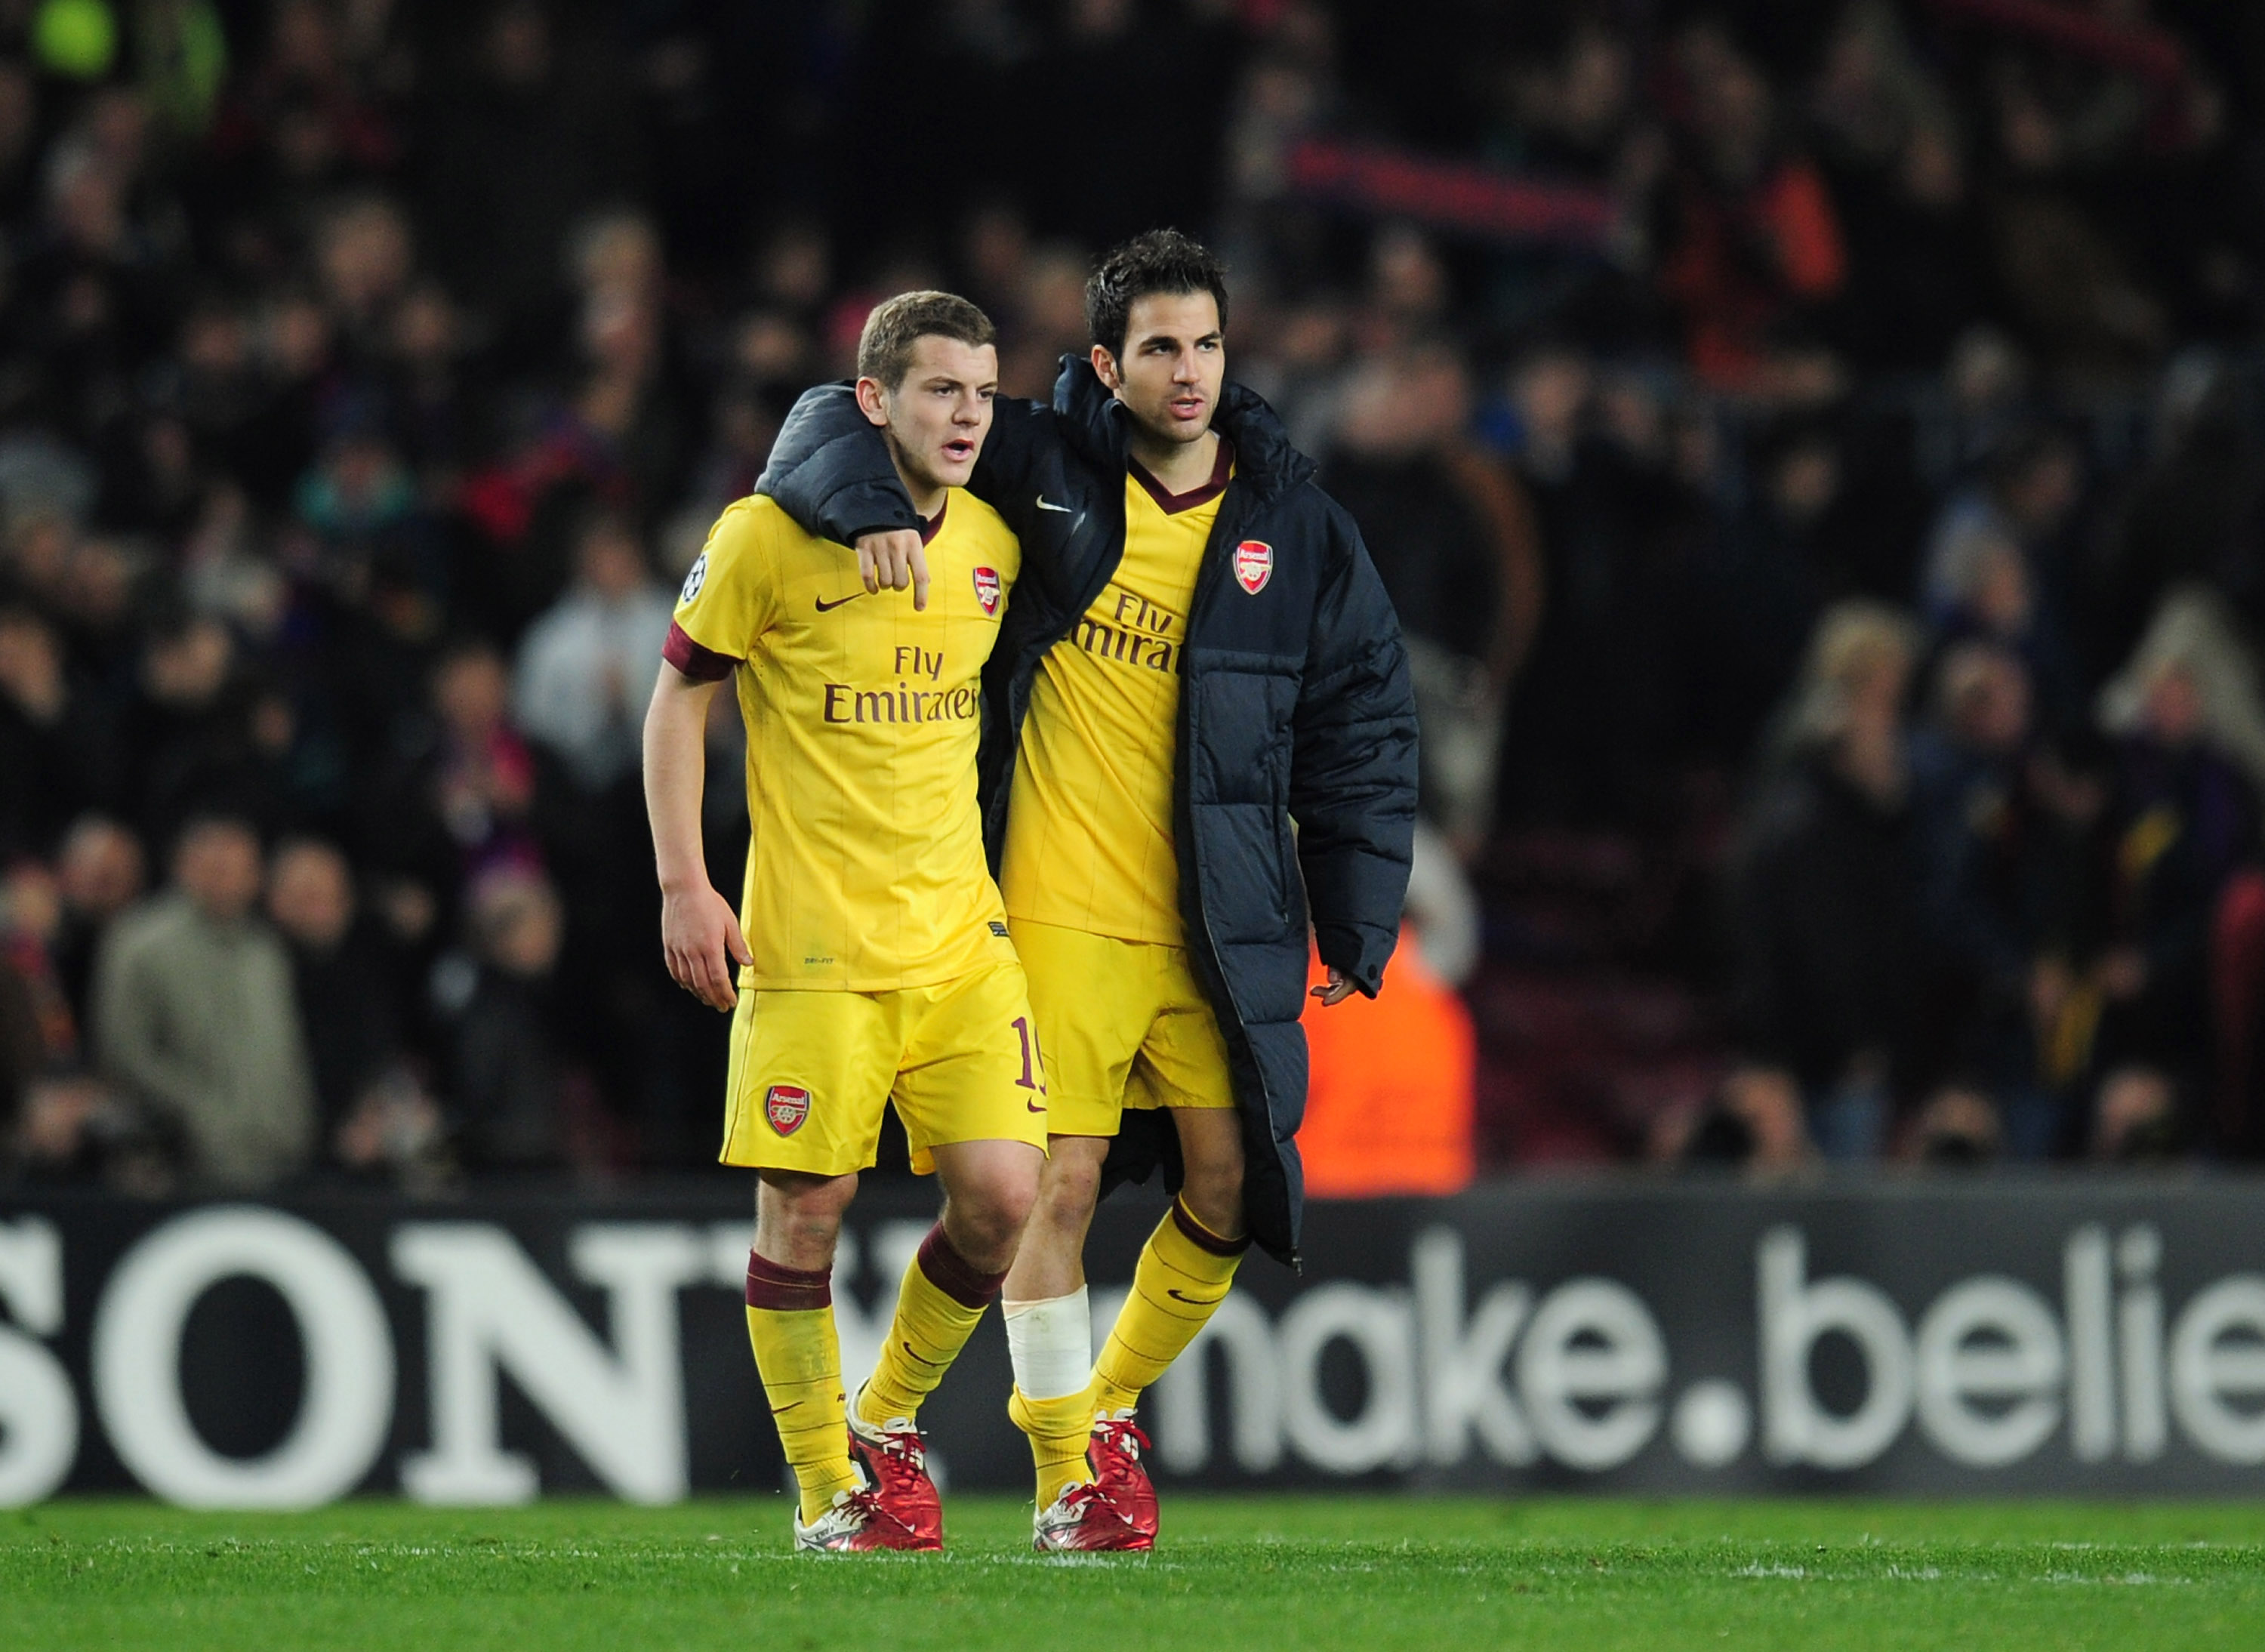 BARCELONA, SPAIN - MARCH 08:  Jack Wilshere and Cesc Fabregas of Arsenal leave the field at the end of the UEFA Champions League round of 16 second leg match between Barcelona and Arsenal at the Nou Camp Stadium on March 8, 2011 in Barcelona, Spain.  (Pho